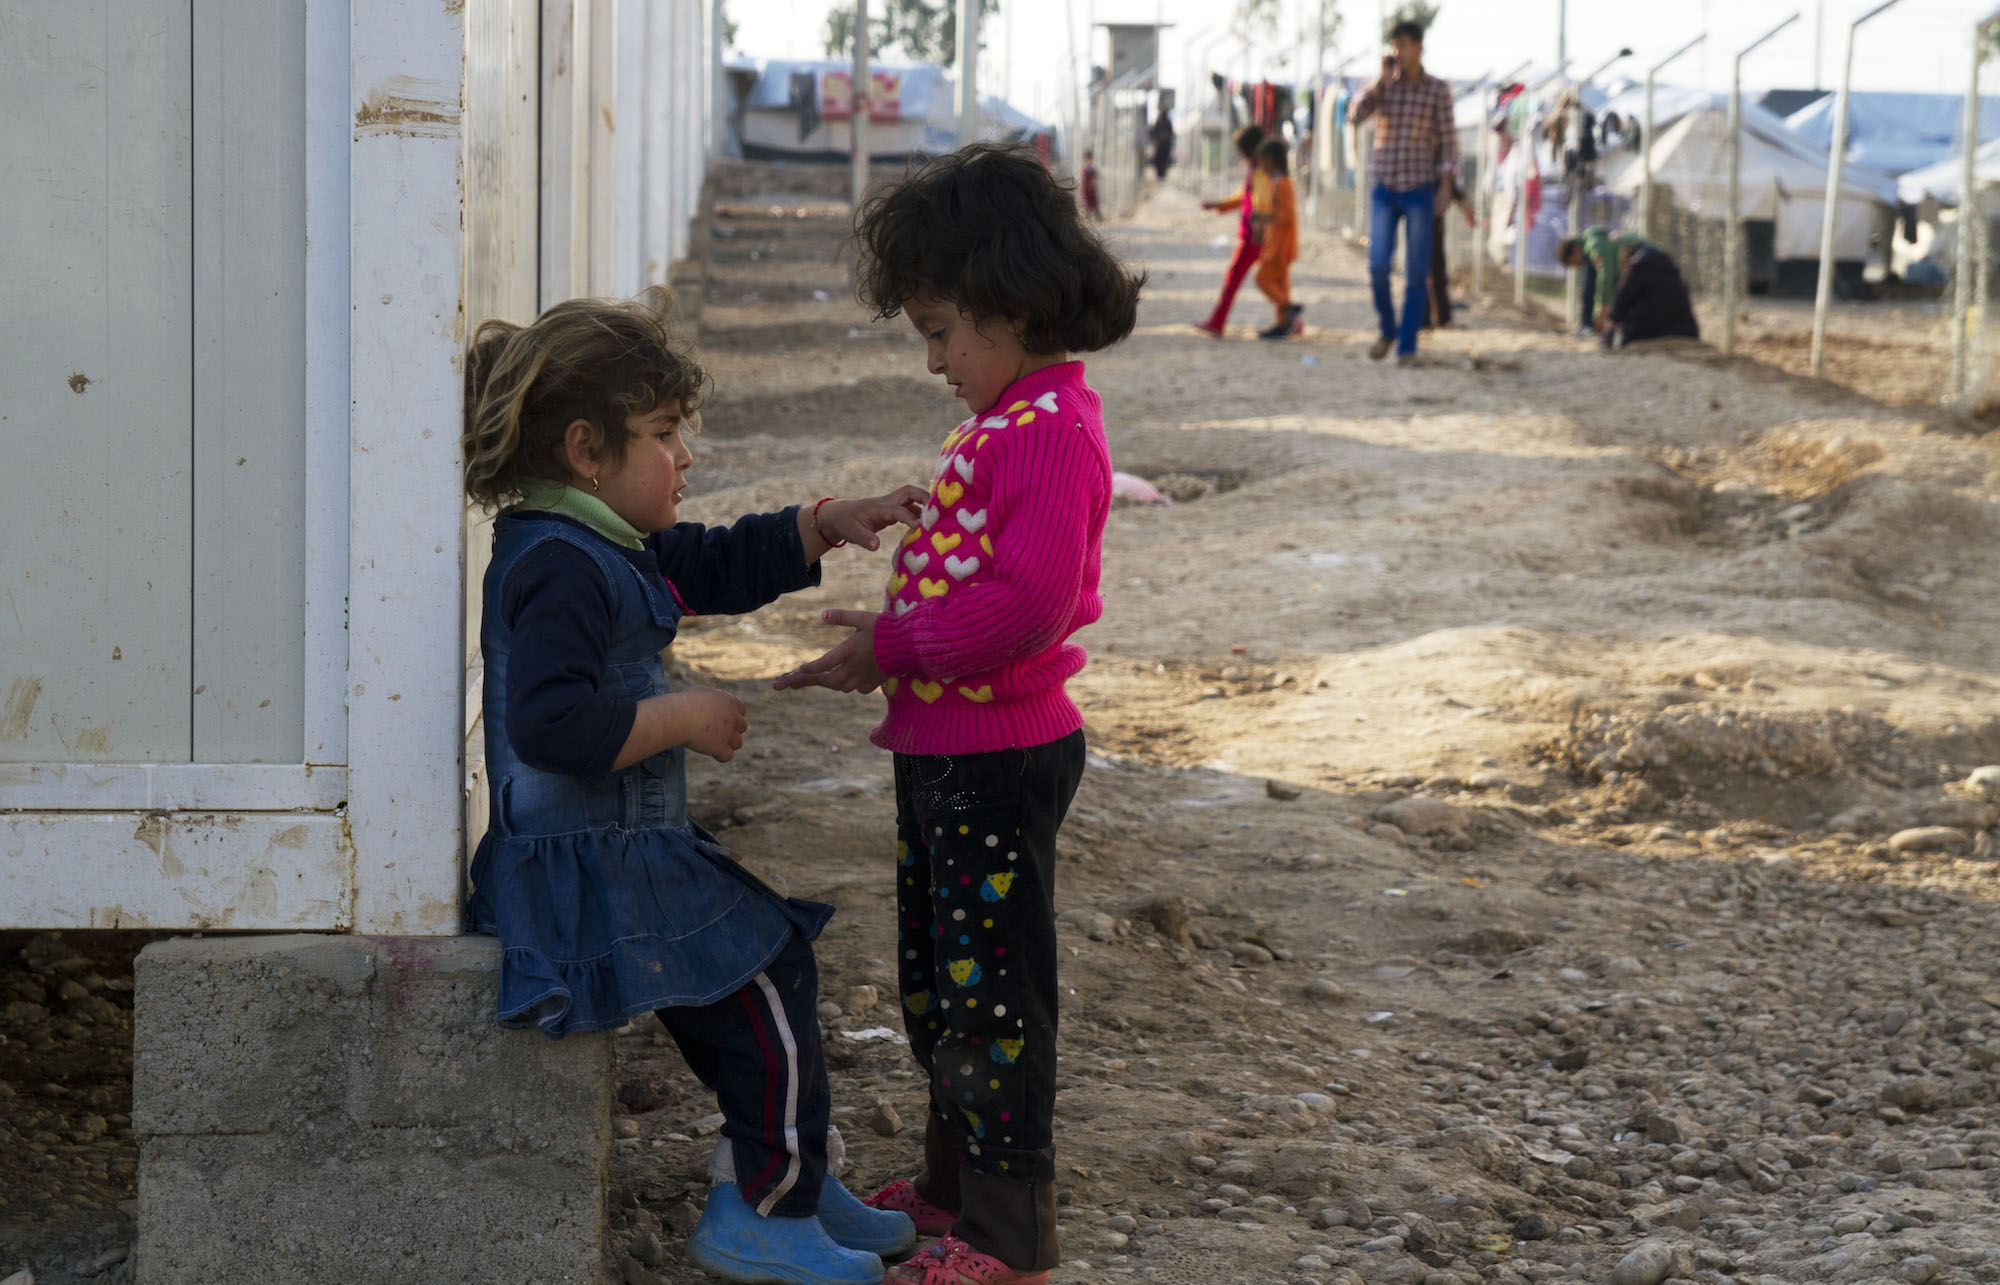 Two children play at the Baharka camp for displaced camp outside Erbil in Iraqi Kurdistan. Bathroom conditions at the camp have been described as deplorable. Toilets are filthy and showers are broken. Baharka, Erbil, Iraq